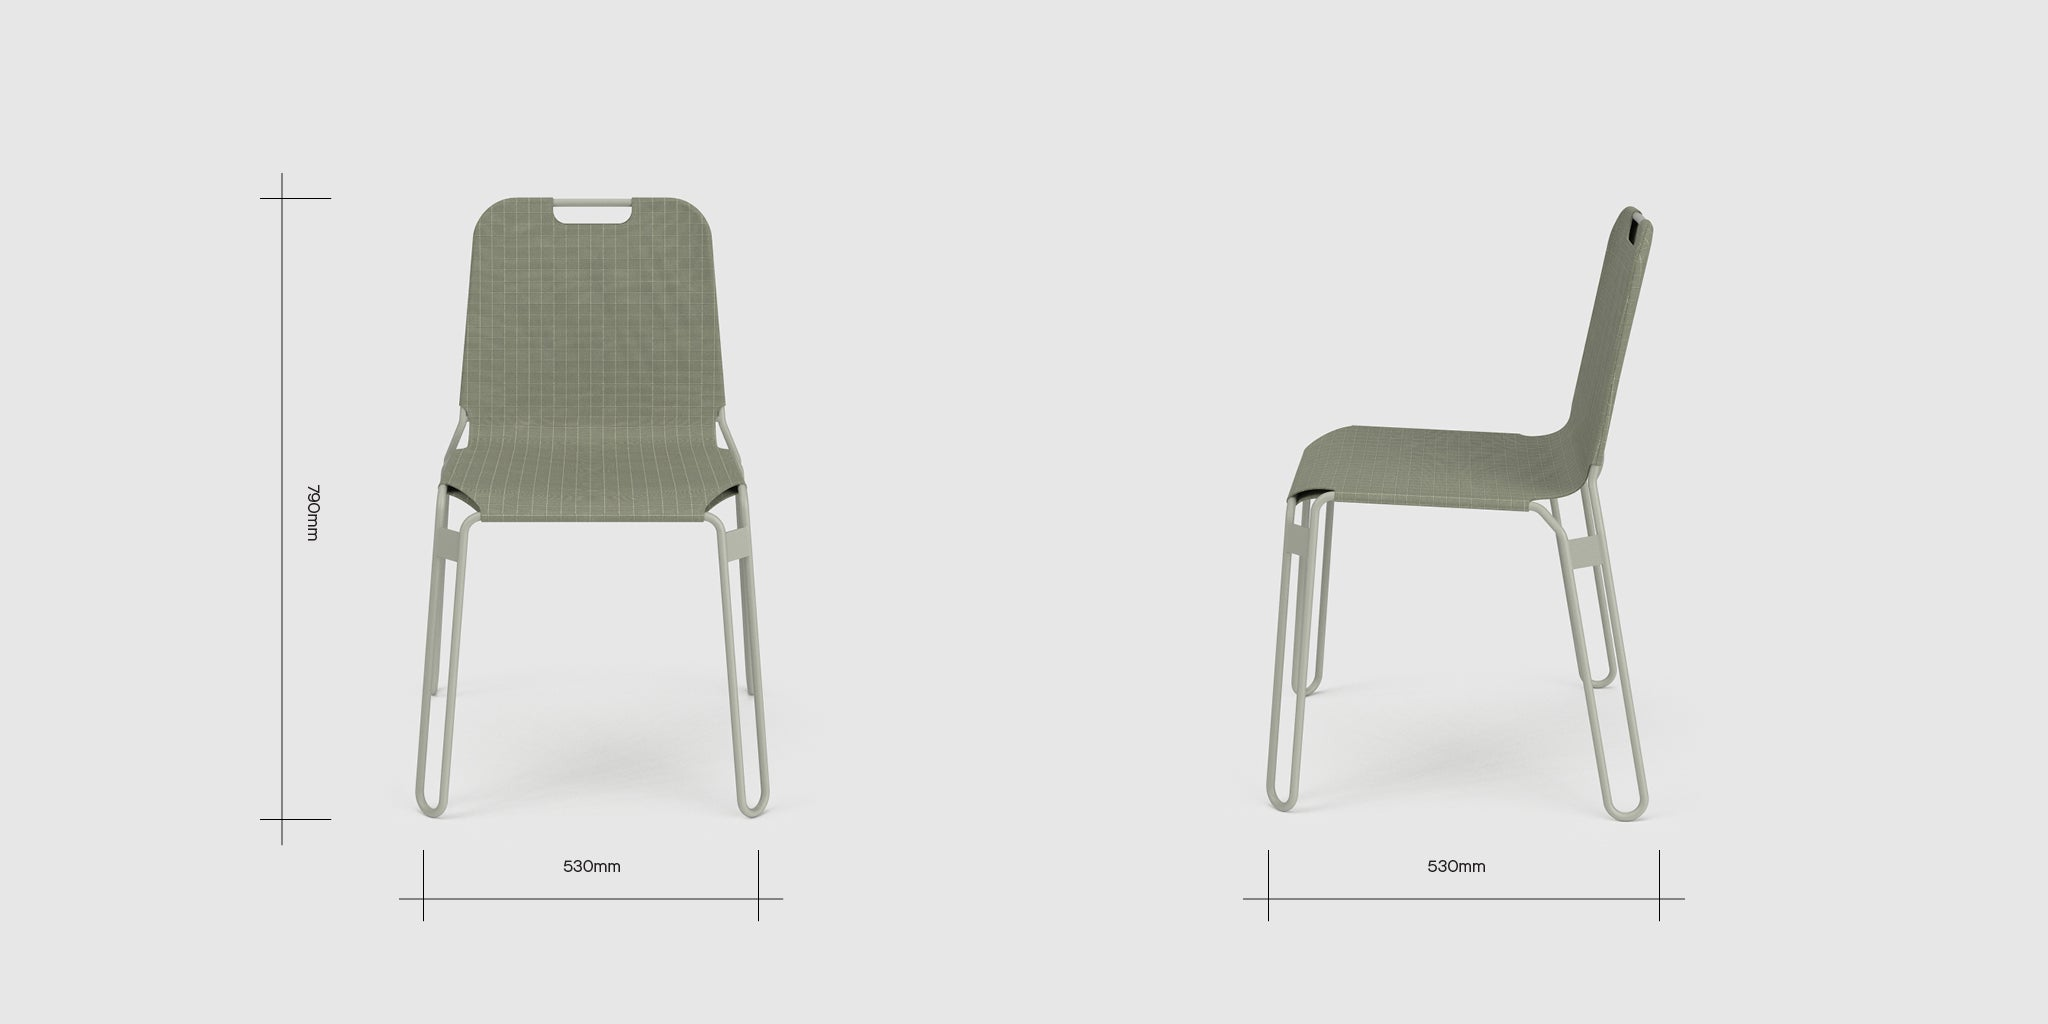 Alice Series Chair Dimensions